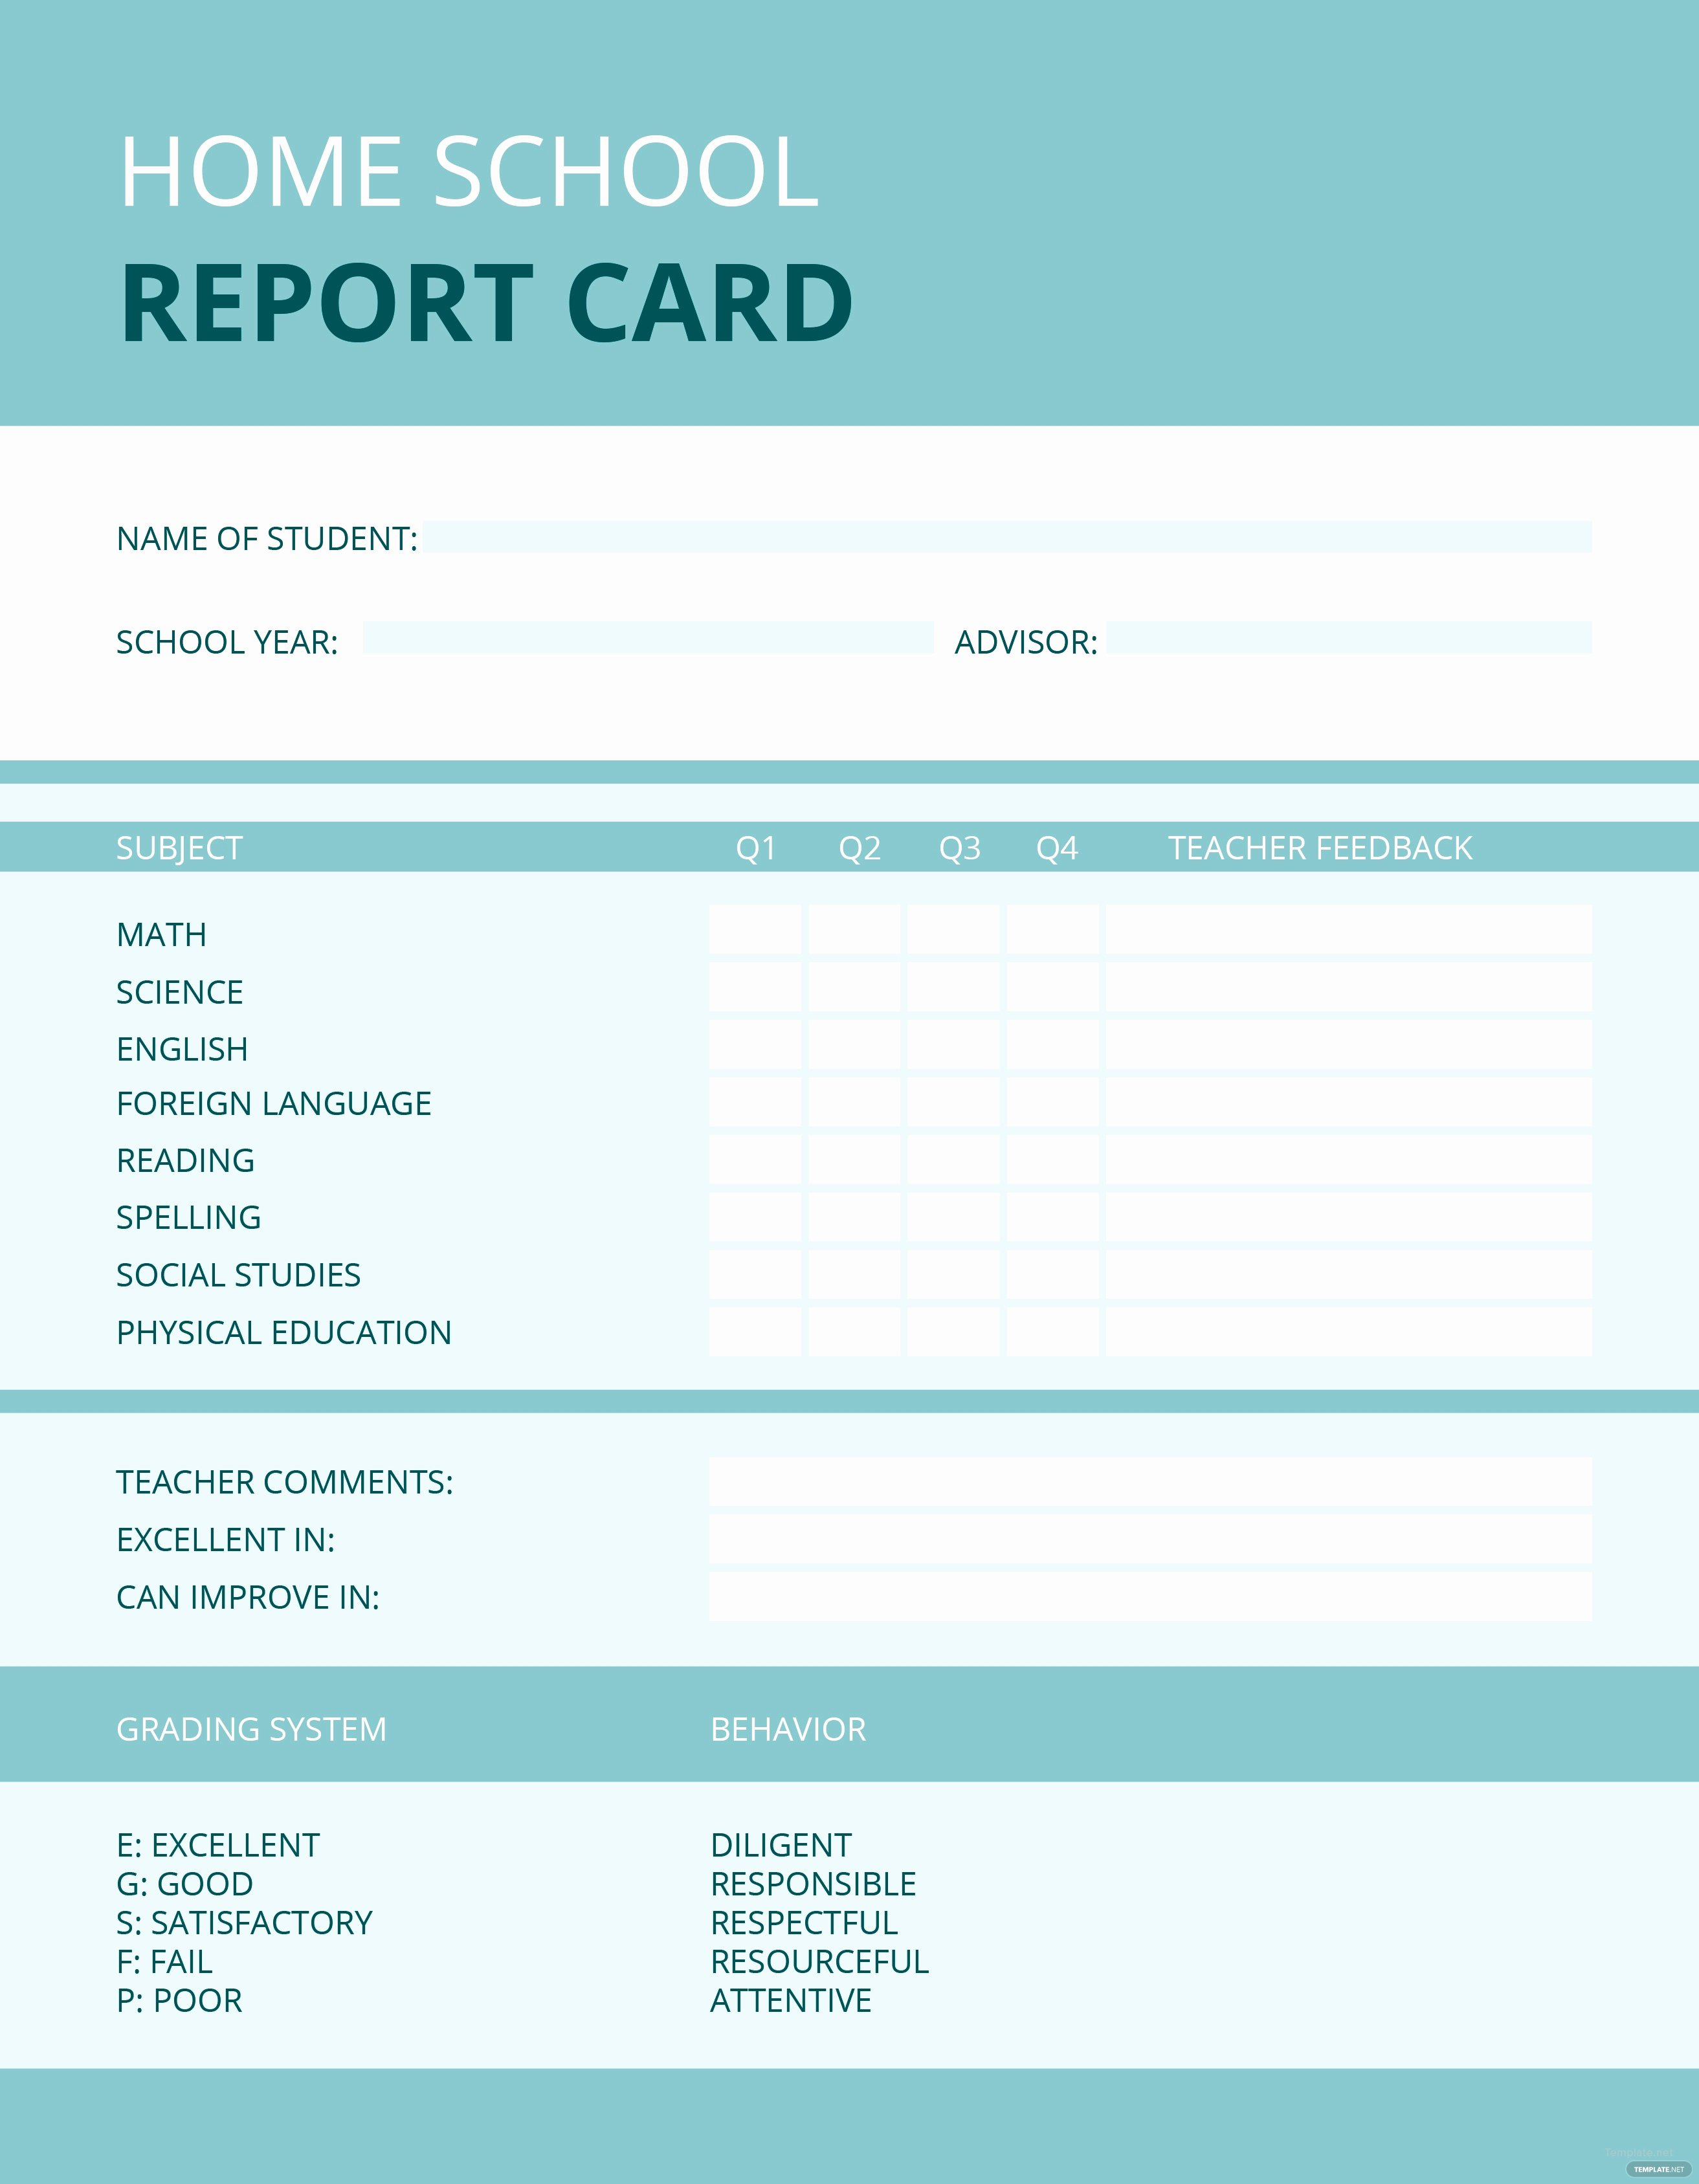 Report Card Template Word Awesome Free Home School Report Card Template In Microsoft Word